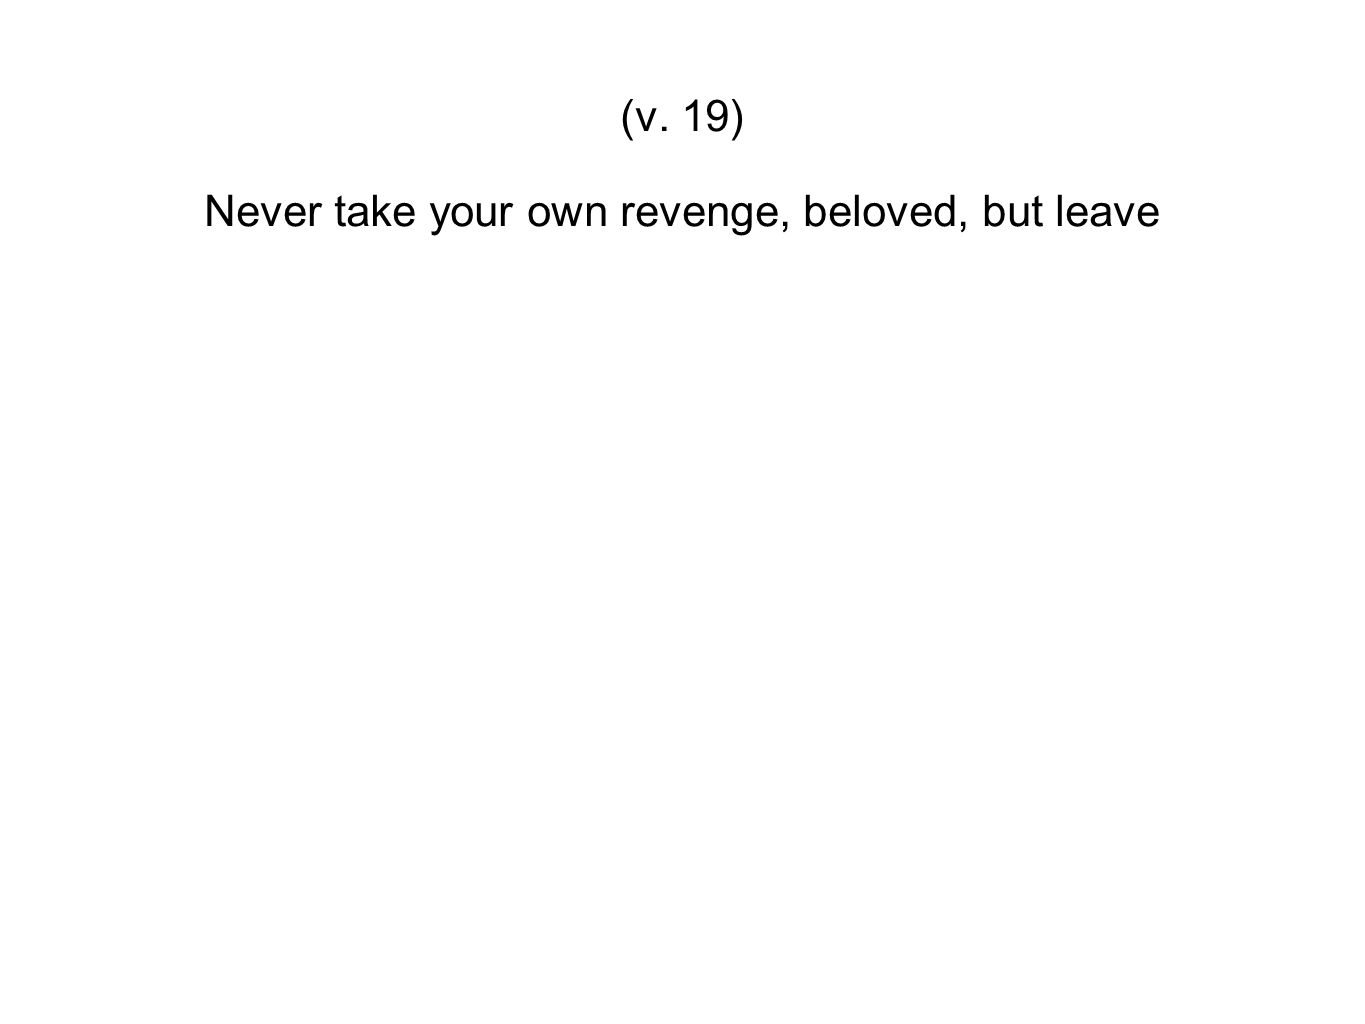 Never take your own revenge, beloved, but leave